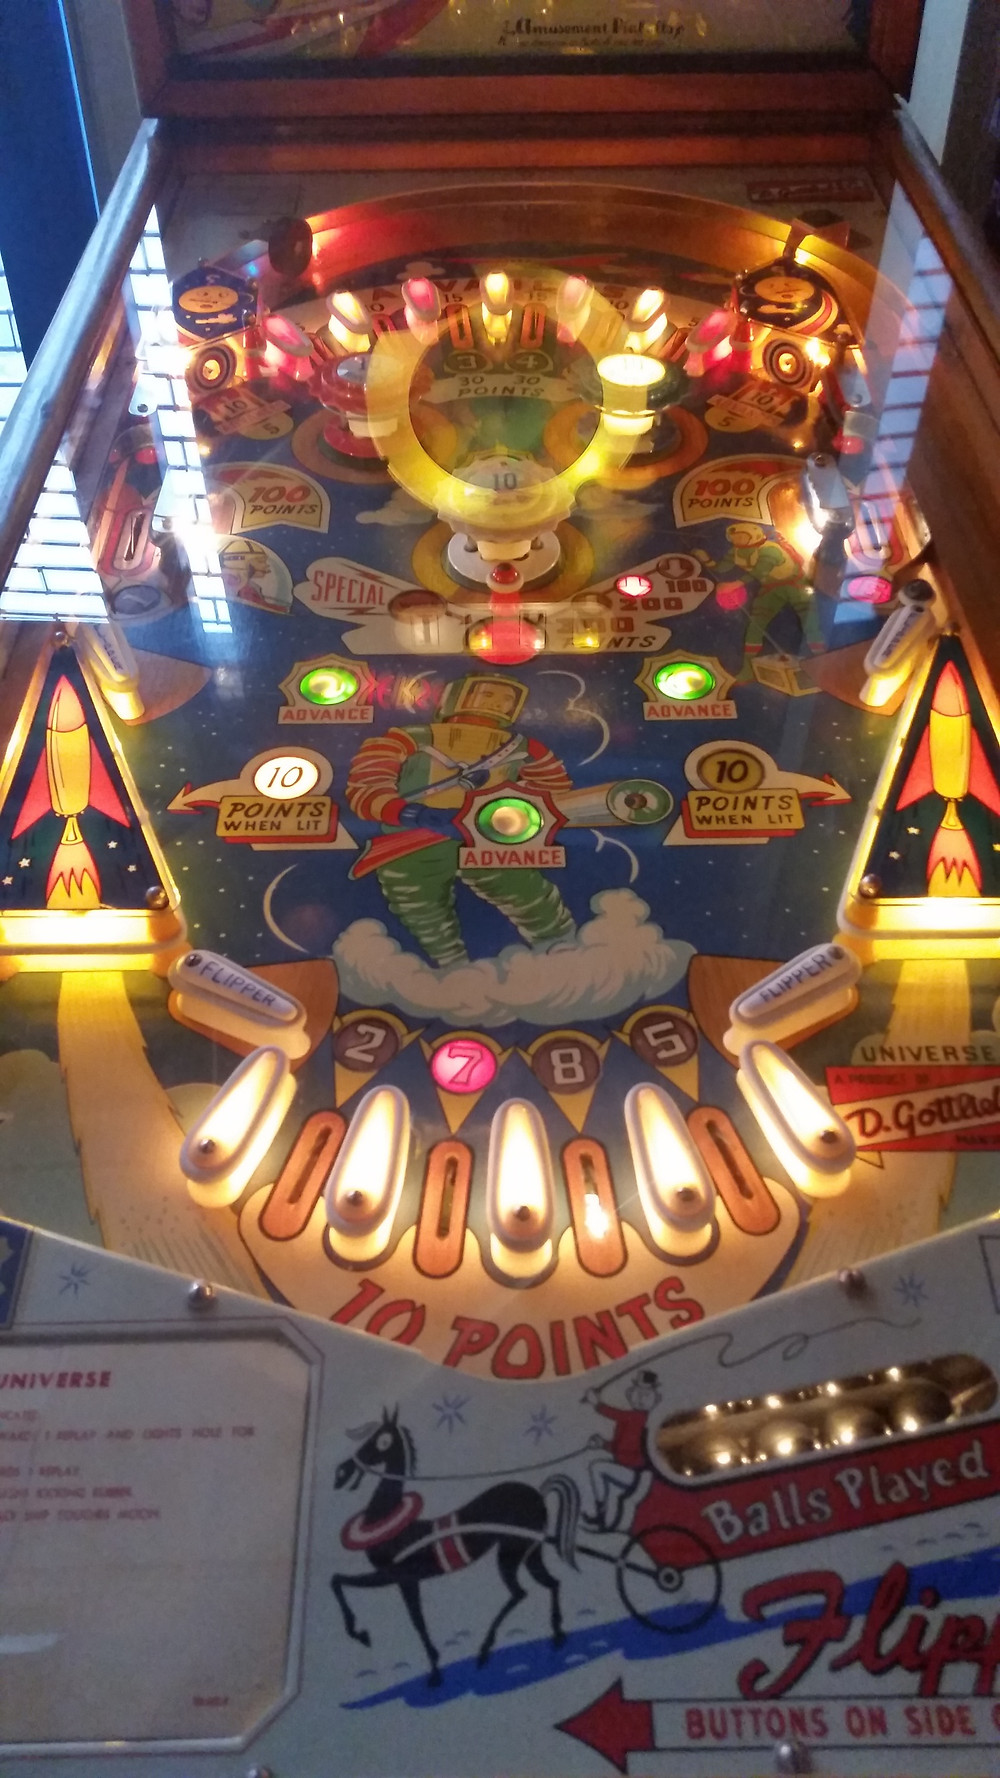 Gottlieb, Universe from October 1959 woodrail EM (electro-mechanical) pinball